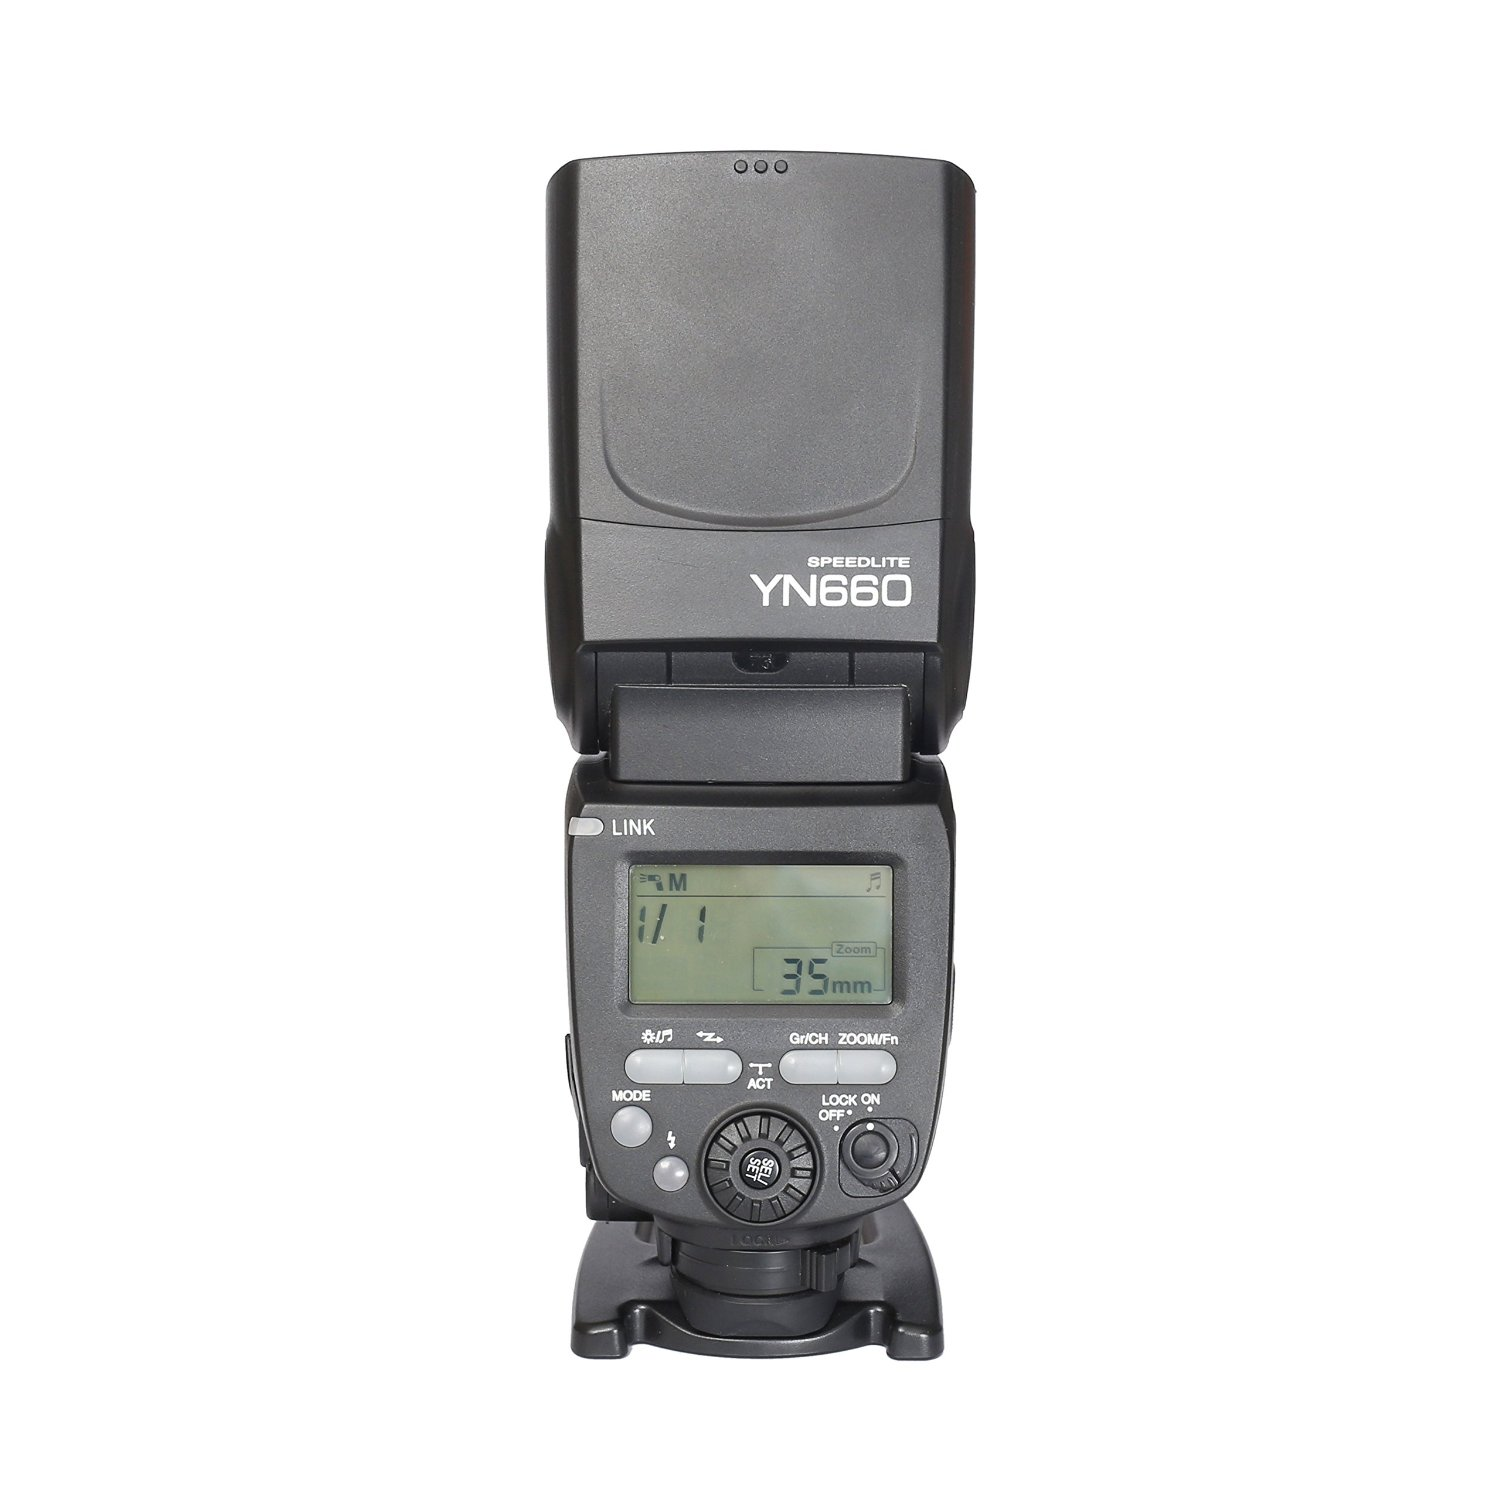 Yongnuo YN660 Wireless GN66 2.4G Flash Speedlite для Canon Nikon Pentax Cameras